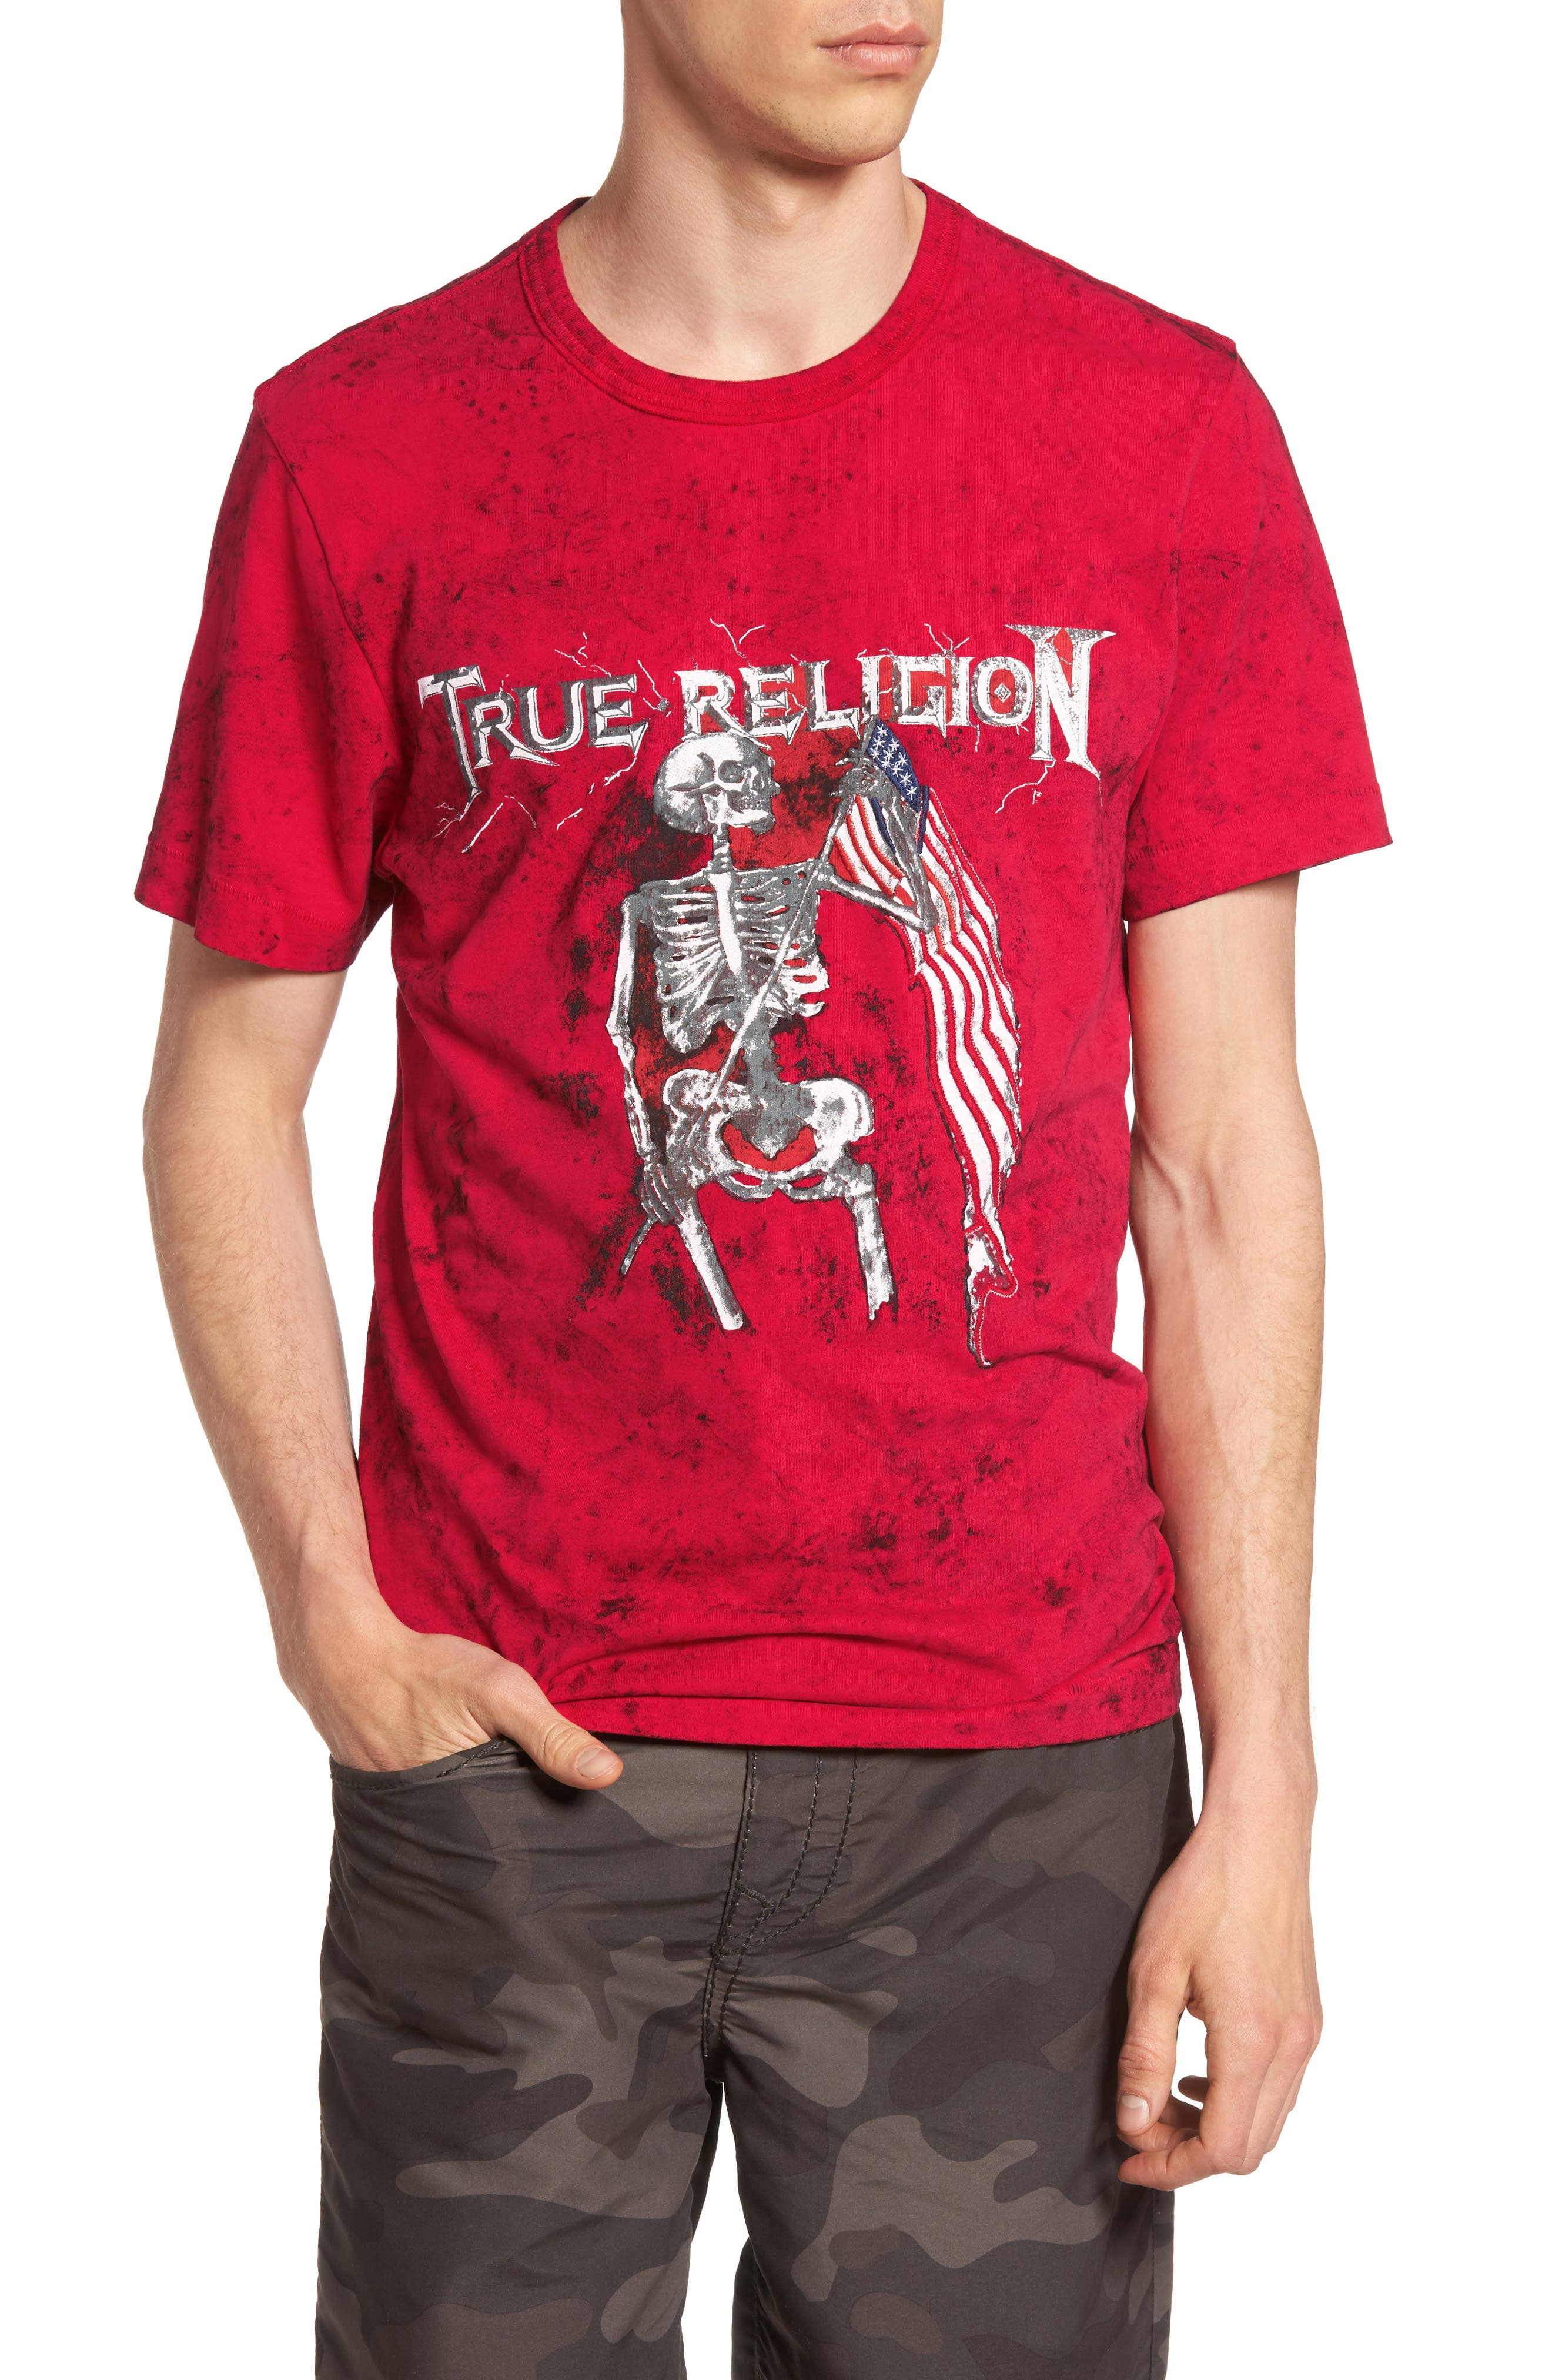 True Religion Brand Jeans 4th Flag Embroidered Graphic T-Shirt